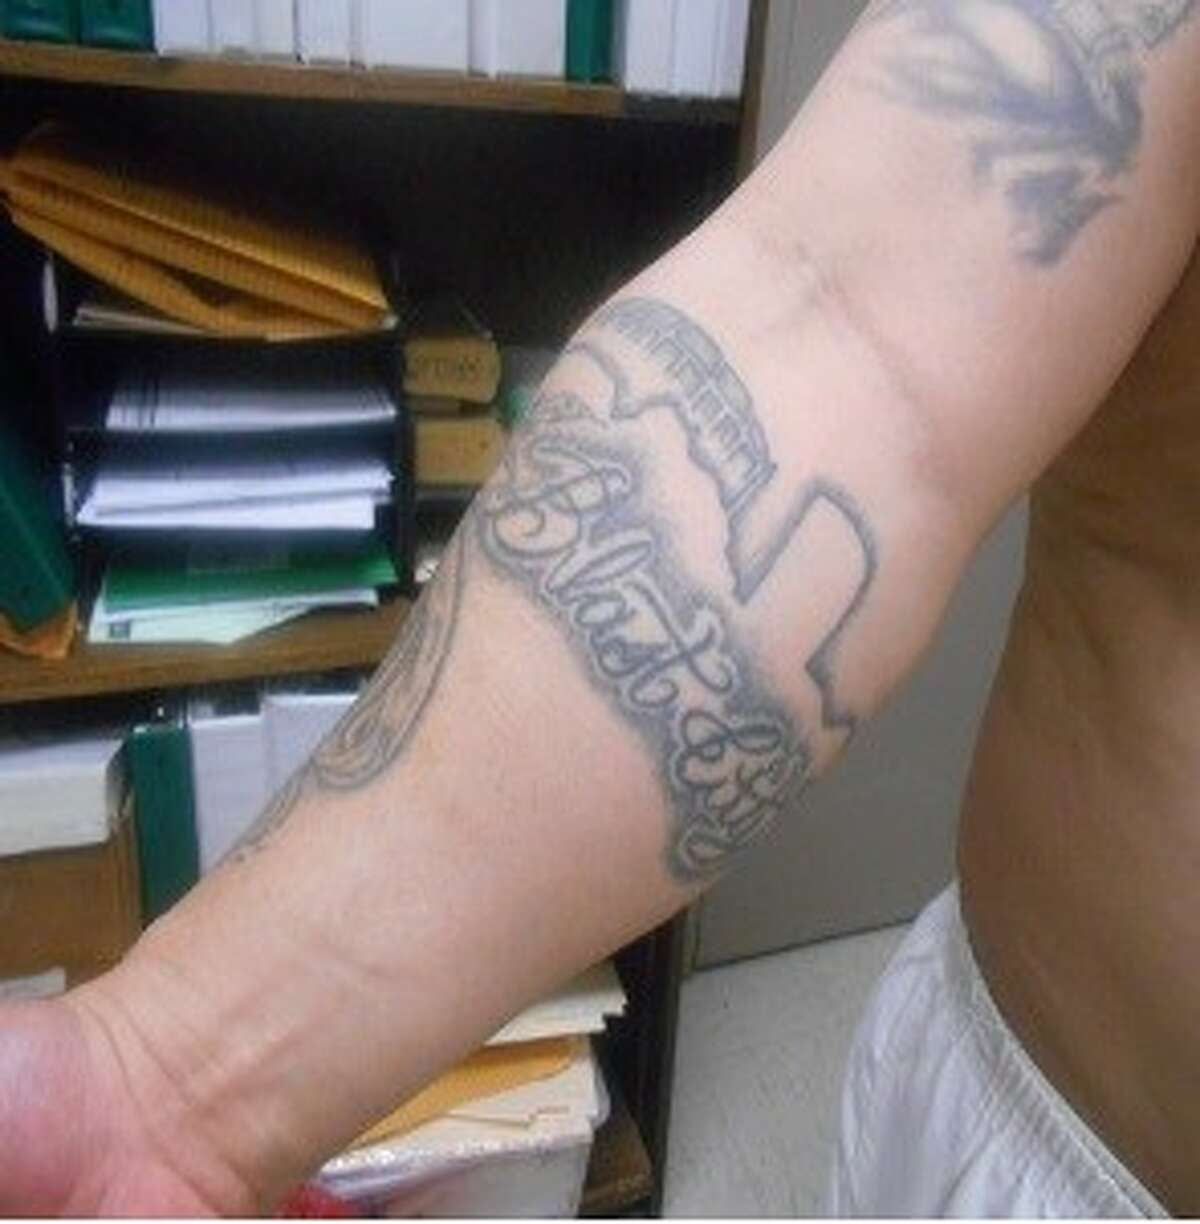 Convicted sex offender and Tango Blast gang member Manuel Mora is wanted by the Texas Attorney General's Office for a parole violation. This photo shows the tattoo on his right arm.PHOTOS: Fugitives sought by Houston-area police